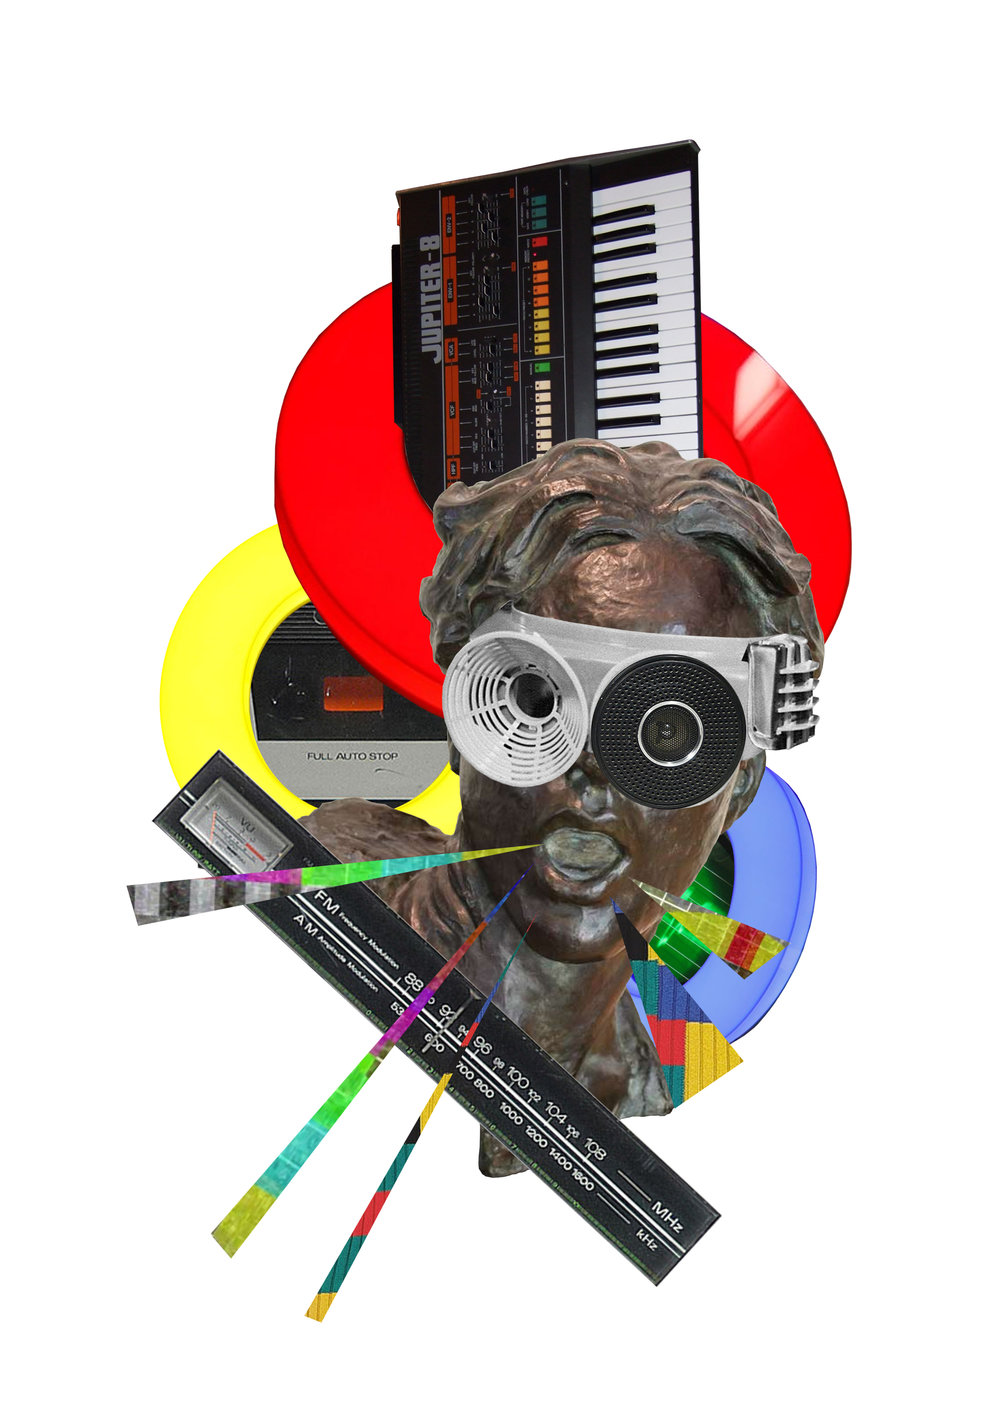 Set Synthesizers To Stun (2019) - Digital Collage - Anthony D Kelly.jpeg